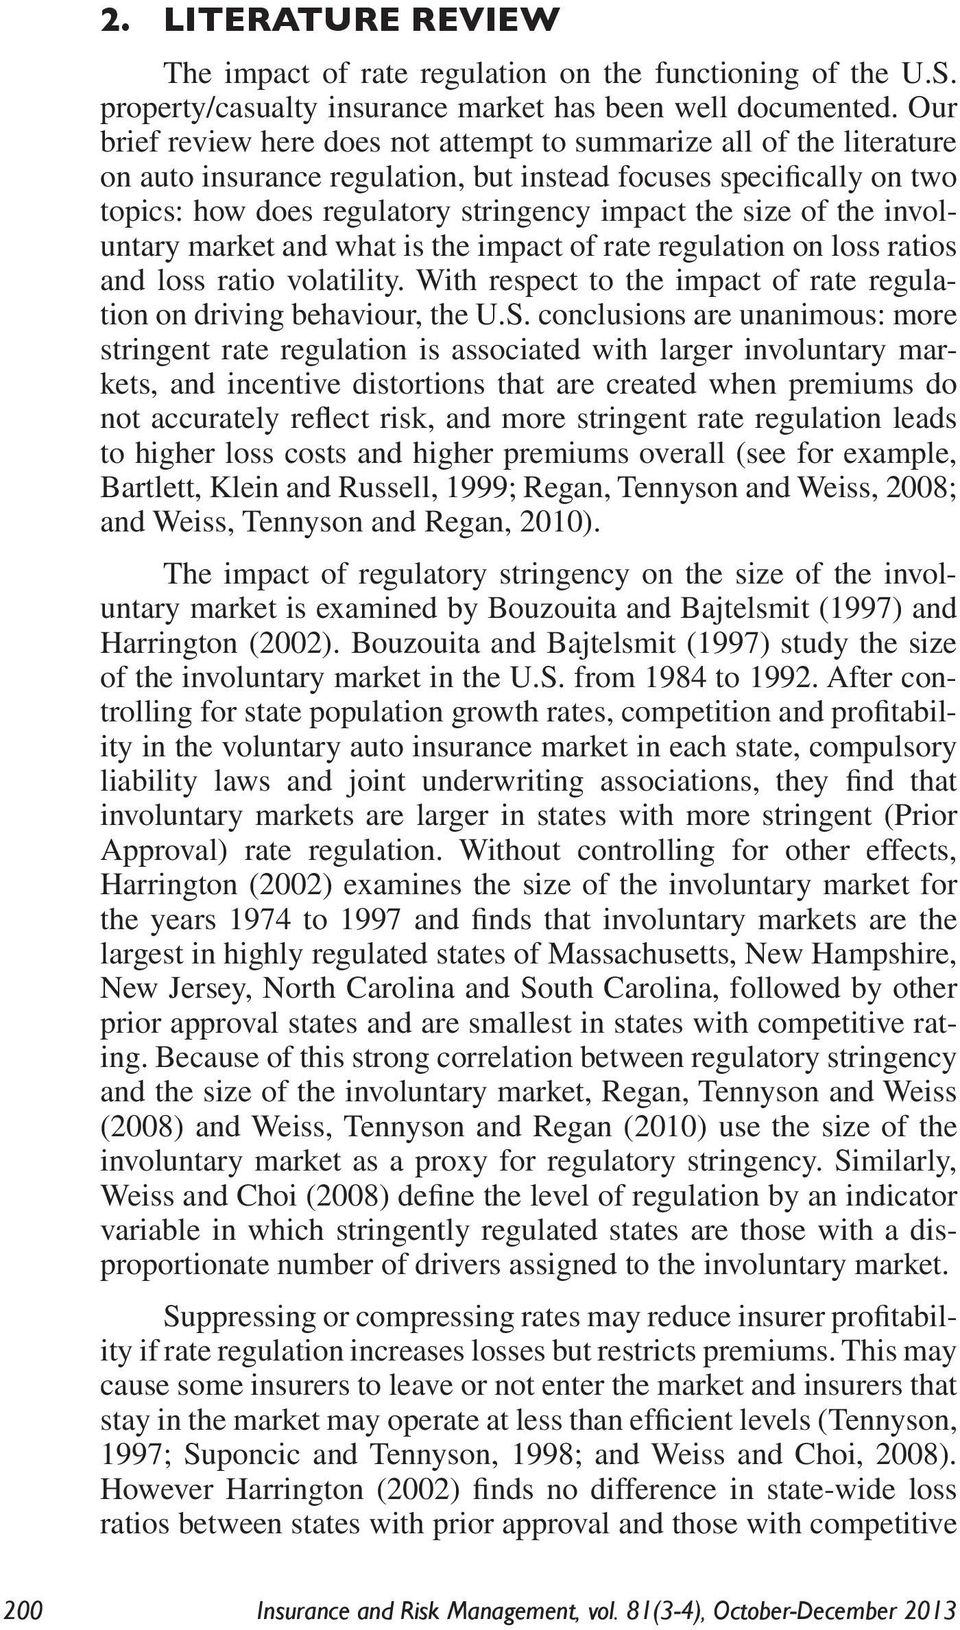 of the involuntary market and what is the impact of rate regulation on loss ratios and loss ratio volatility. With respect to the impact of rate regulation on driving behaviour, the U.S.